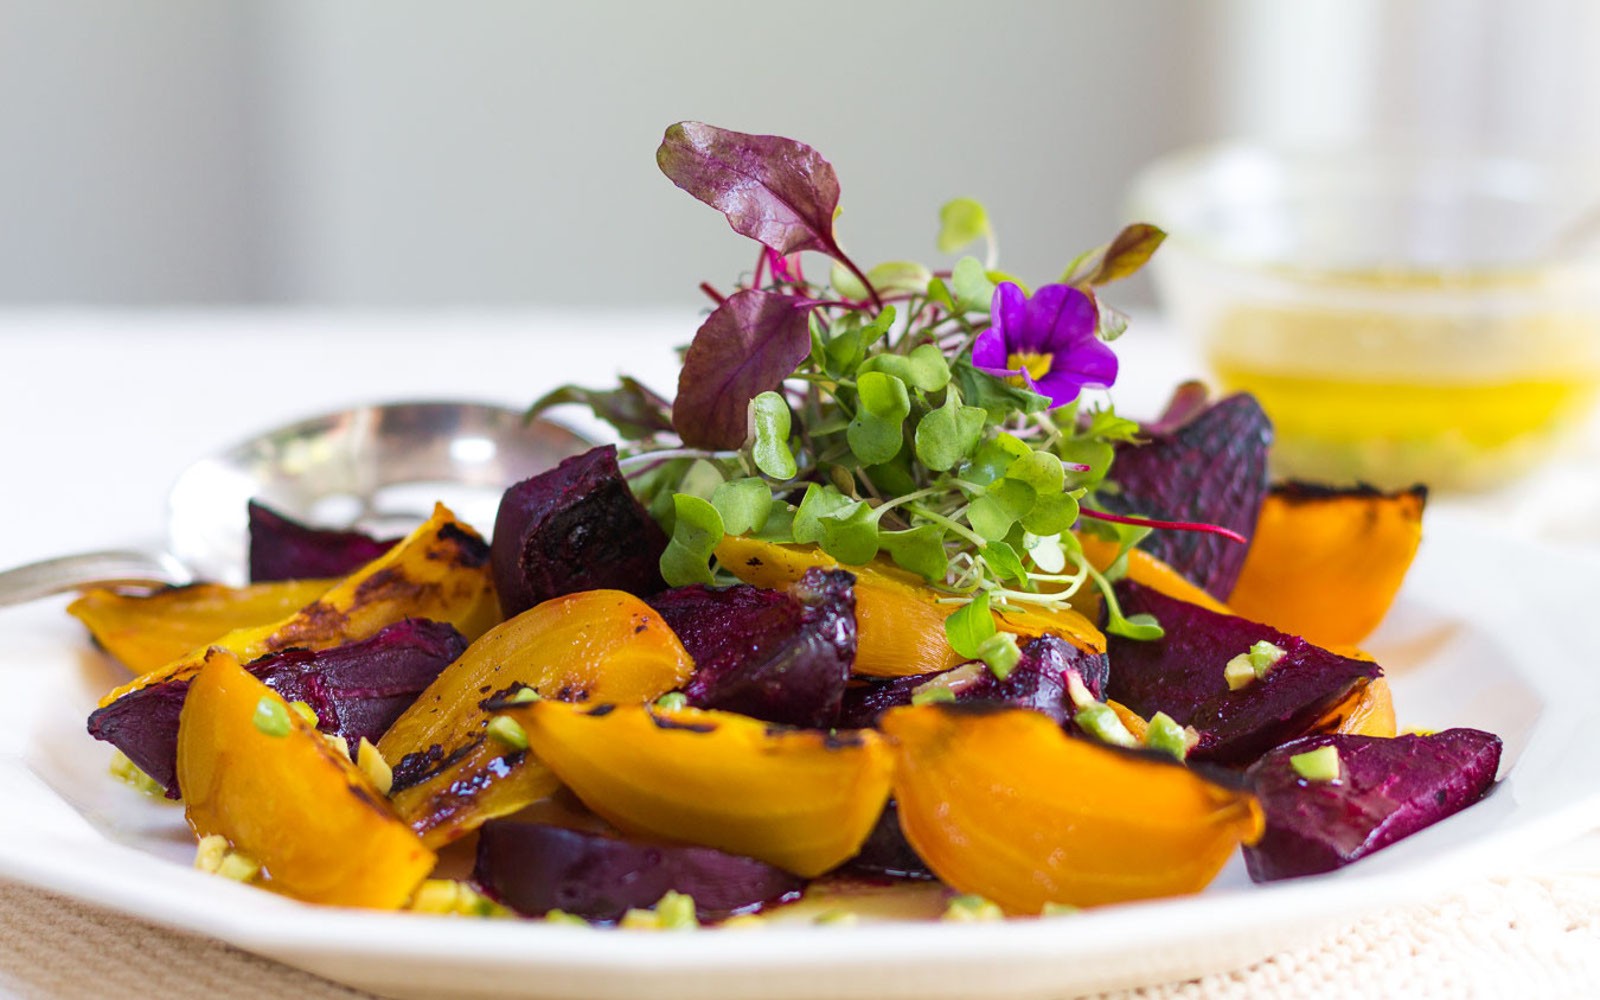 Wood Fired Beet Salad with Avocado-Citrus Vinaigrette